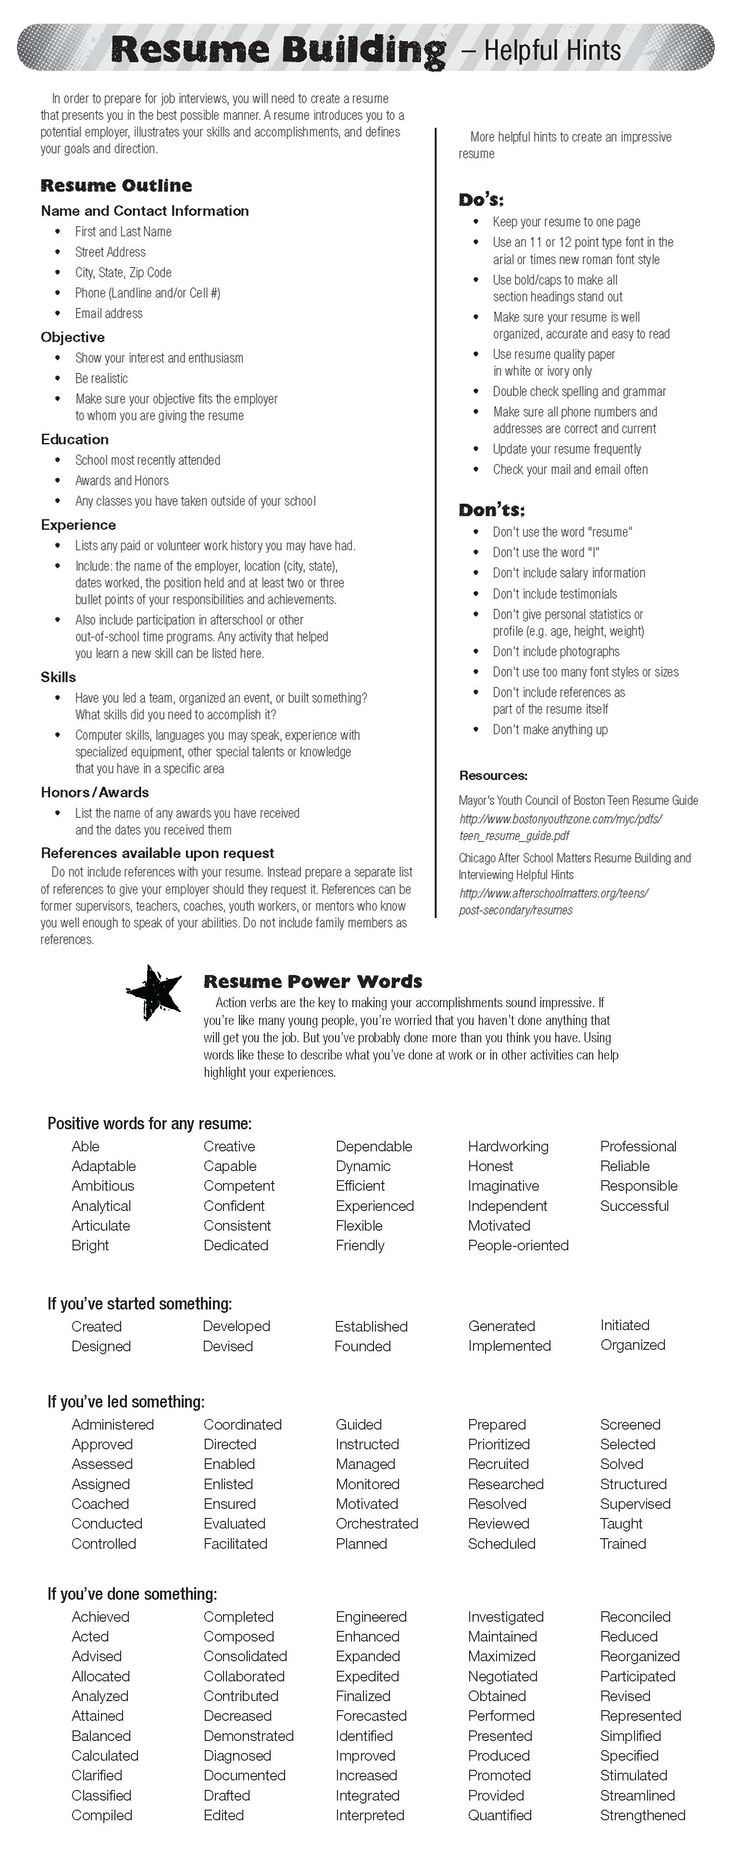 Opposenewapstandardsus  Winsome  Ideas About Resume On Pinterest  Cv Format Resume Cv And  With Marvelous  Ideas About Resume On Pinterest  Cv Format Resume Cv And Resume Templates With Astounding Investment Banking Associate Resume Also Patient Account Representative Resume In Addition Resume Tips Objective And Cover Letter Sample Resume As Well As Is Resume Now Safe Additionally Search Resumes Indeed From Pinterestcom With Opposenewapstandardsus  Marvelous  Ideas About Resume On Pinterest  Cv Format Resume Cv And  With Astounding  Ideas About Resume On Pinterest  Cv Format Resume Cv And Resume Templates And Winsome Investment Banking Associate Resume Also Patient Account Representative Resume In Addition Resume Tips Objective From Pinterestcom